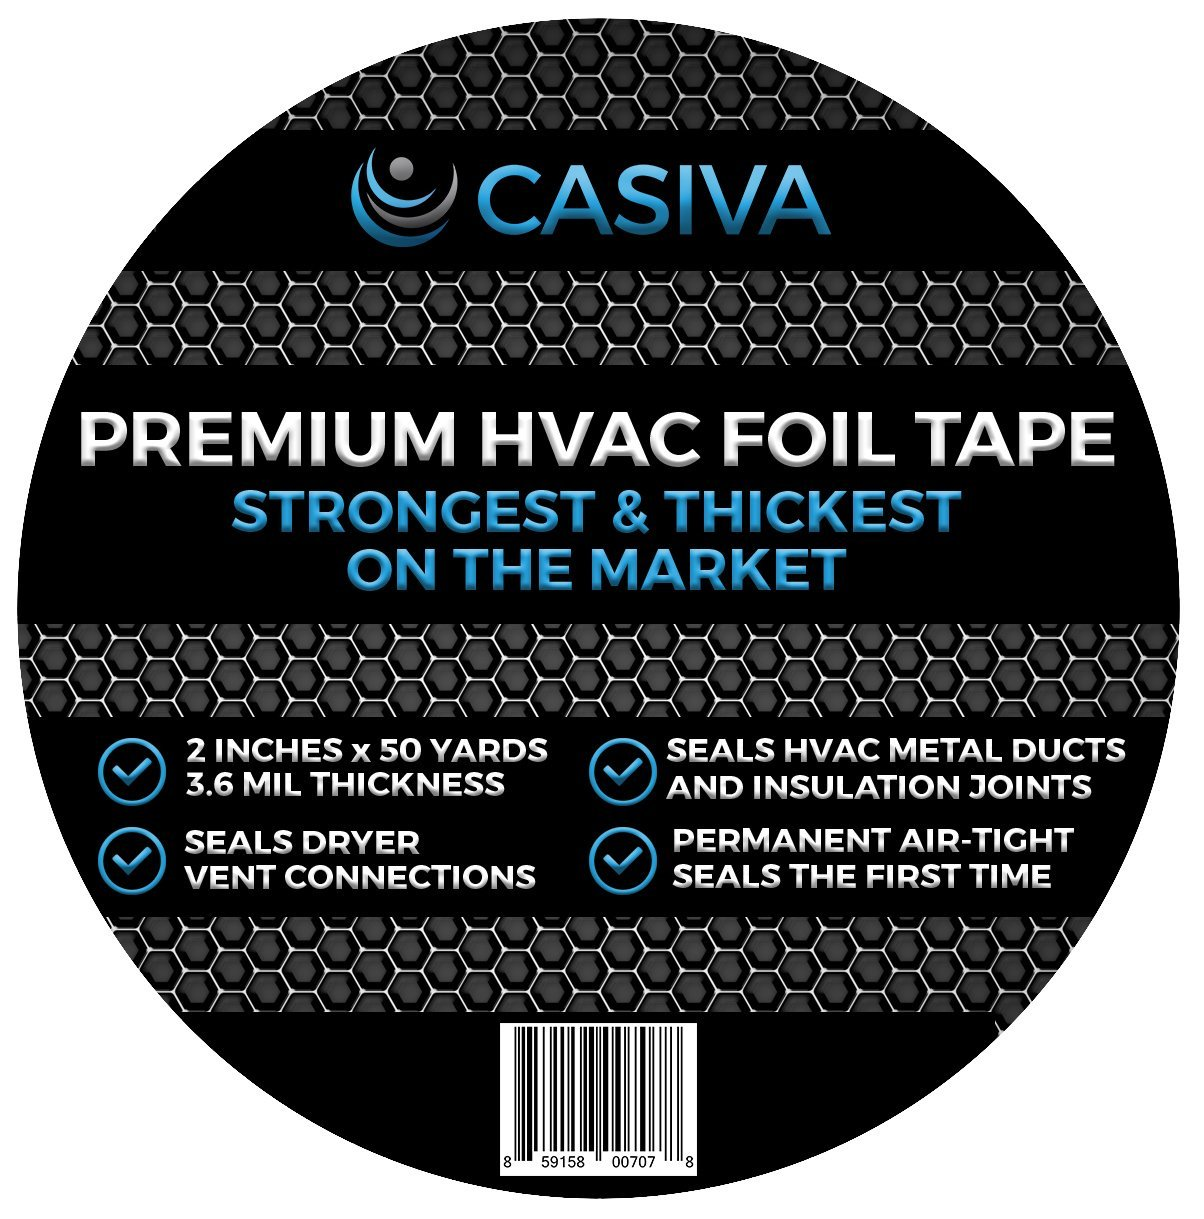 """Professional HVAC Tape & Premium Aluminum Foil Tape - Strongest & Thickest - 3.6mil Thickness, 50 Yards, 2"""" Width - For Duct Insulation & Metal Sealant"""